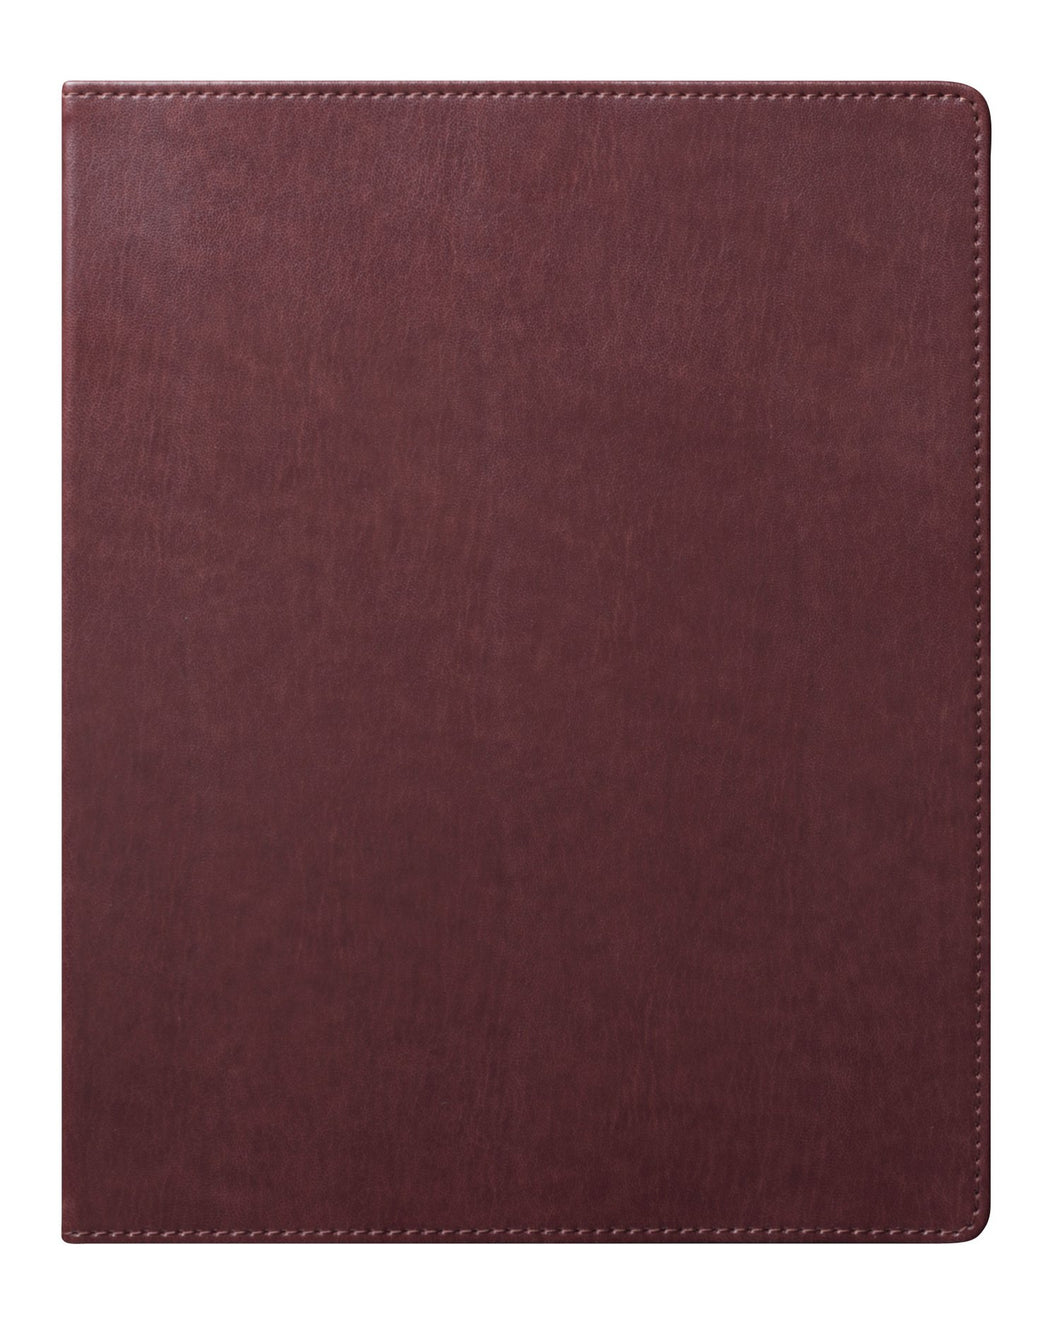 Eccolo Brown Journal